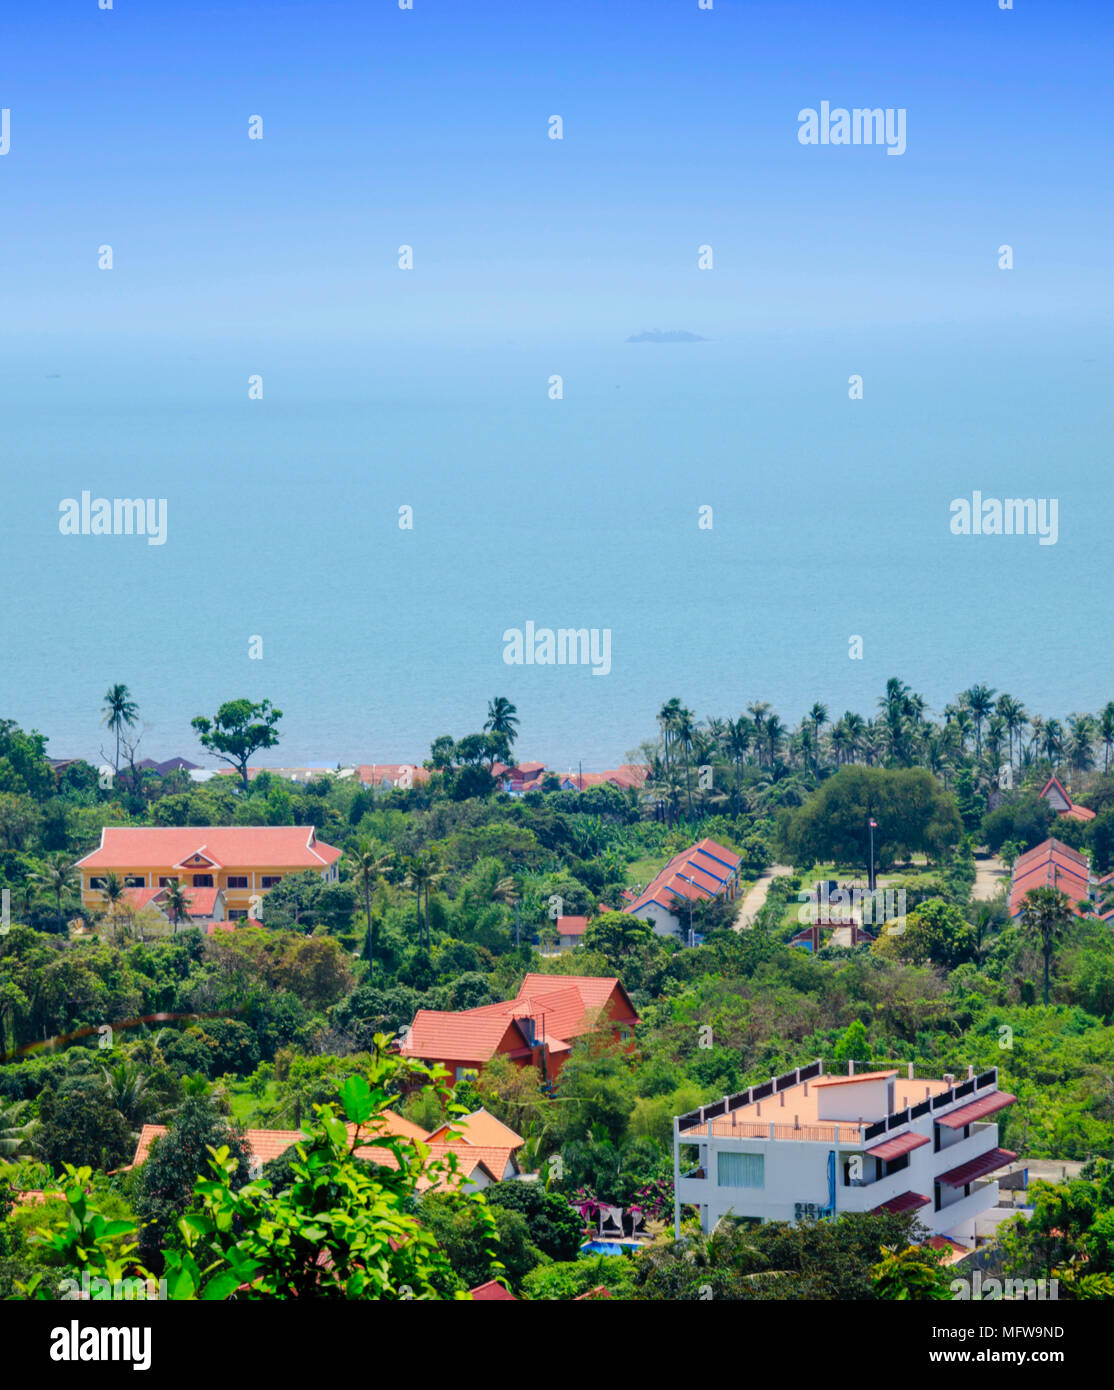 View over the village of Kep in Kampot province, Cambodia from Kep National Park, showing the South China sea and hotel buildings - Stock Image